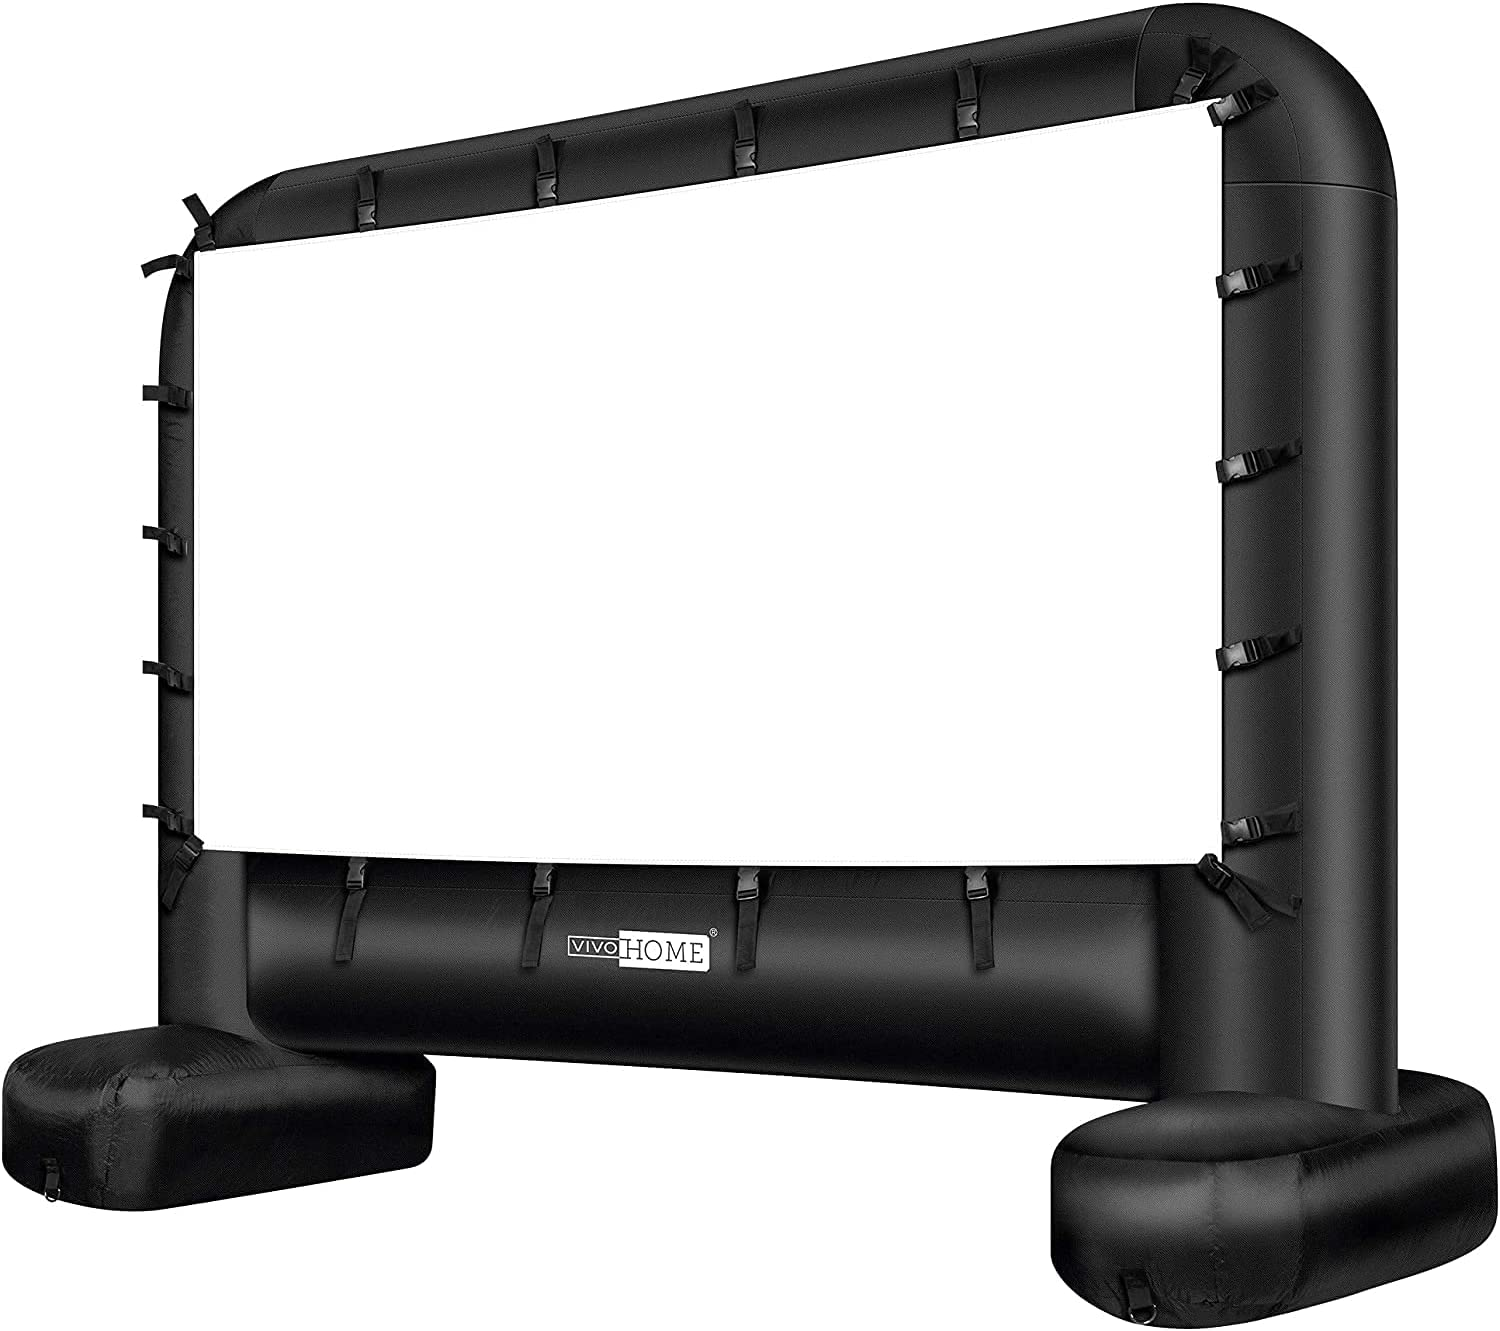 VIVOHOME 17 Feet Indoor/Outdoor Inflatable Movie Projector Screen with Carry Bag